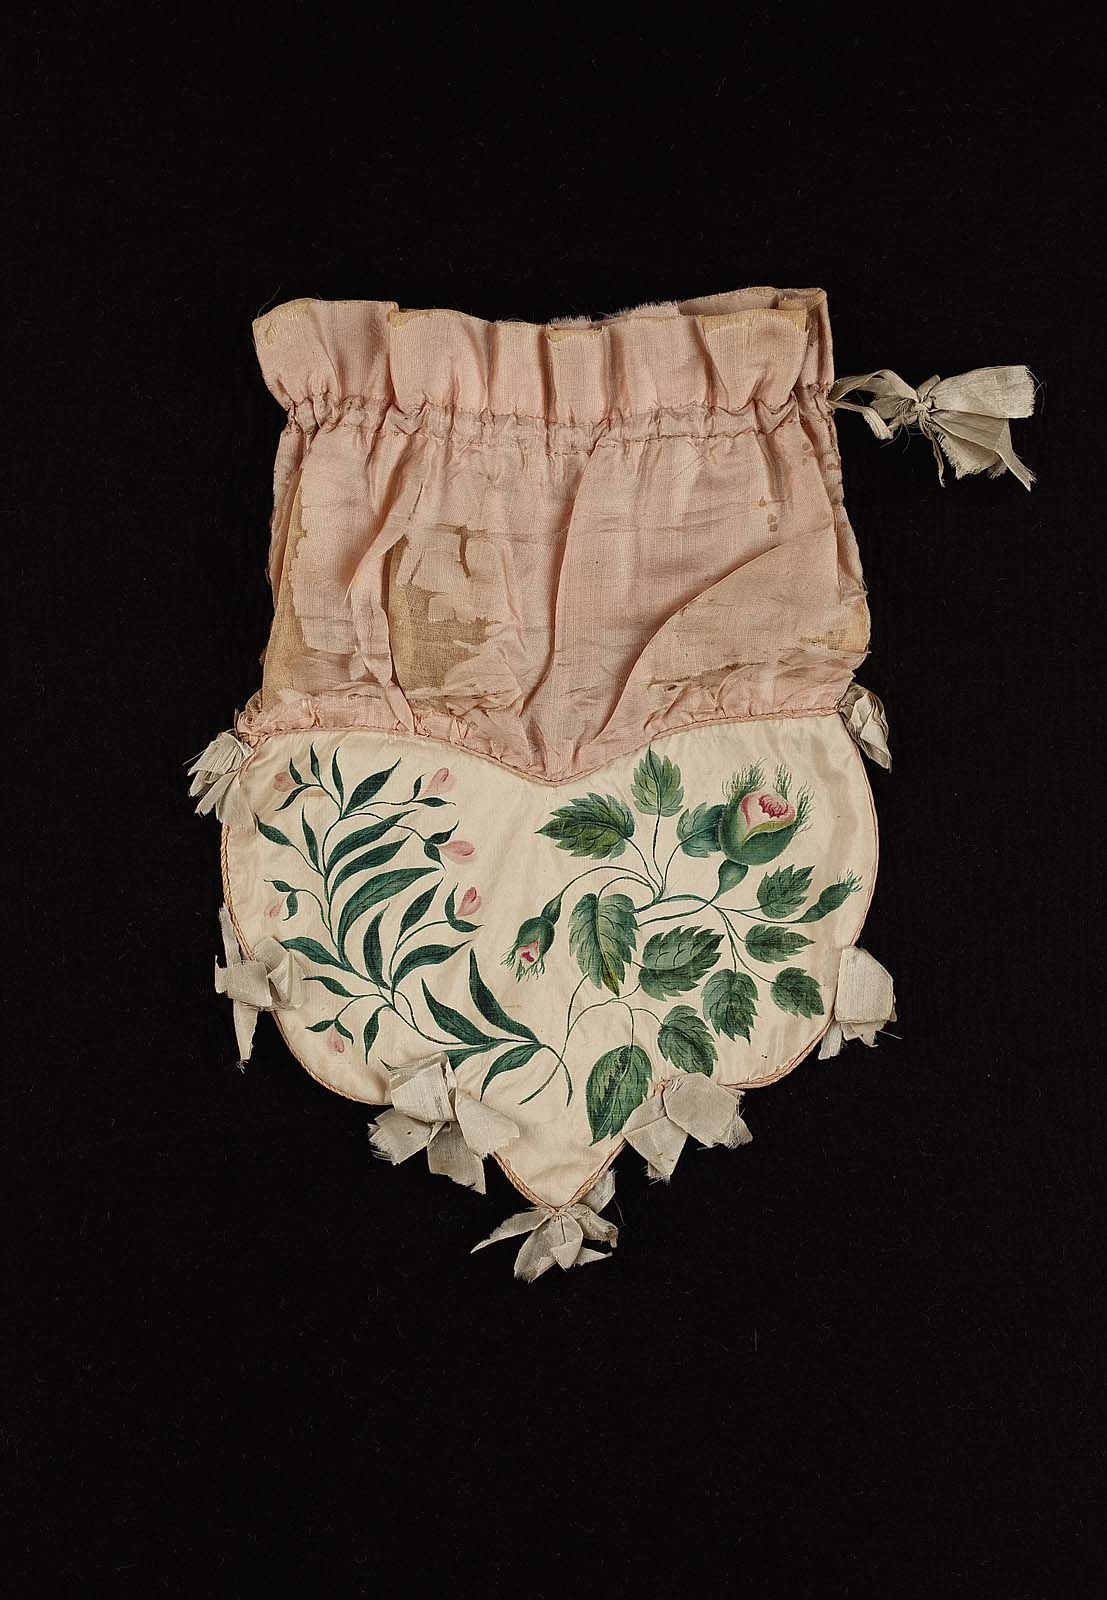 Drawstring bag | Museum of Fine Arts, Boston Painted silk drawstring bag.